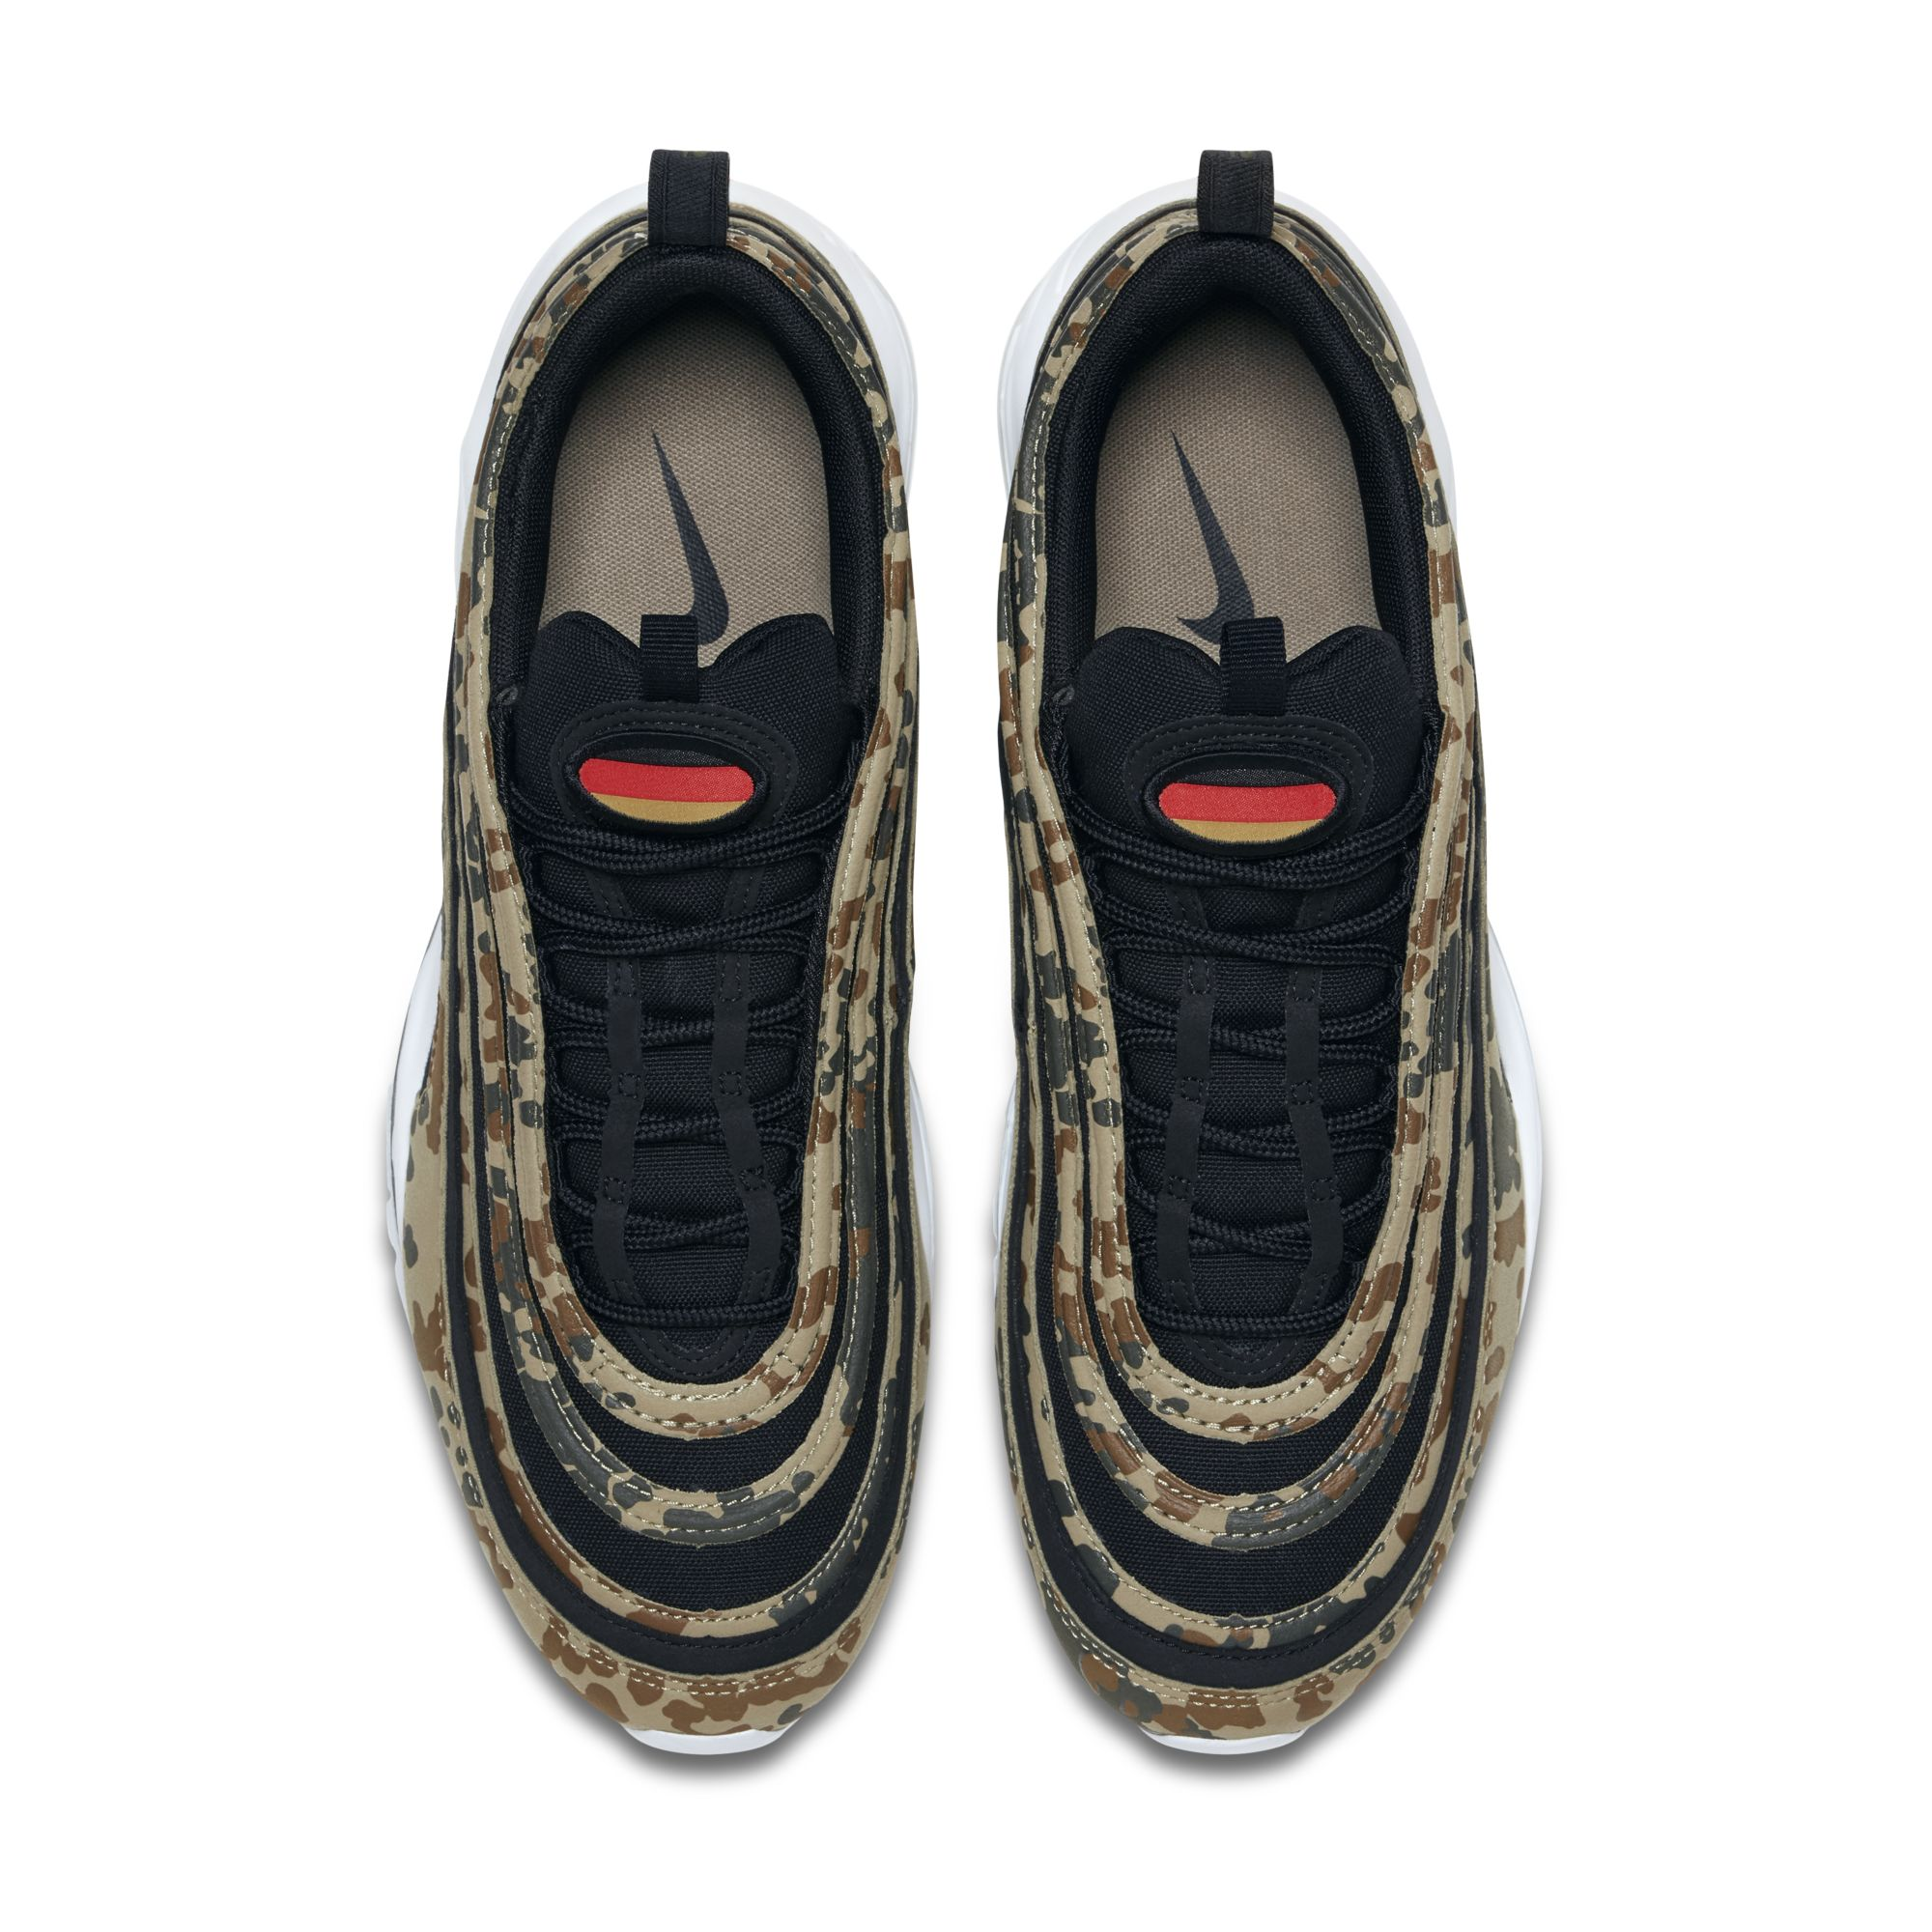 Nike Air Max 97 Premium Country Camo Pack Germany